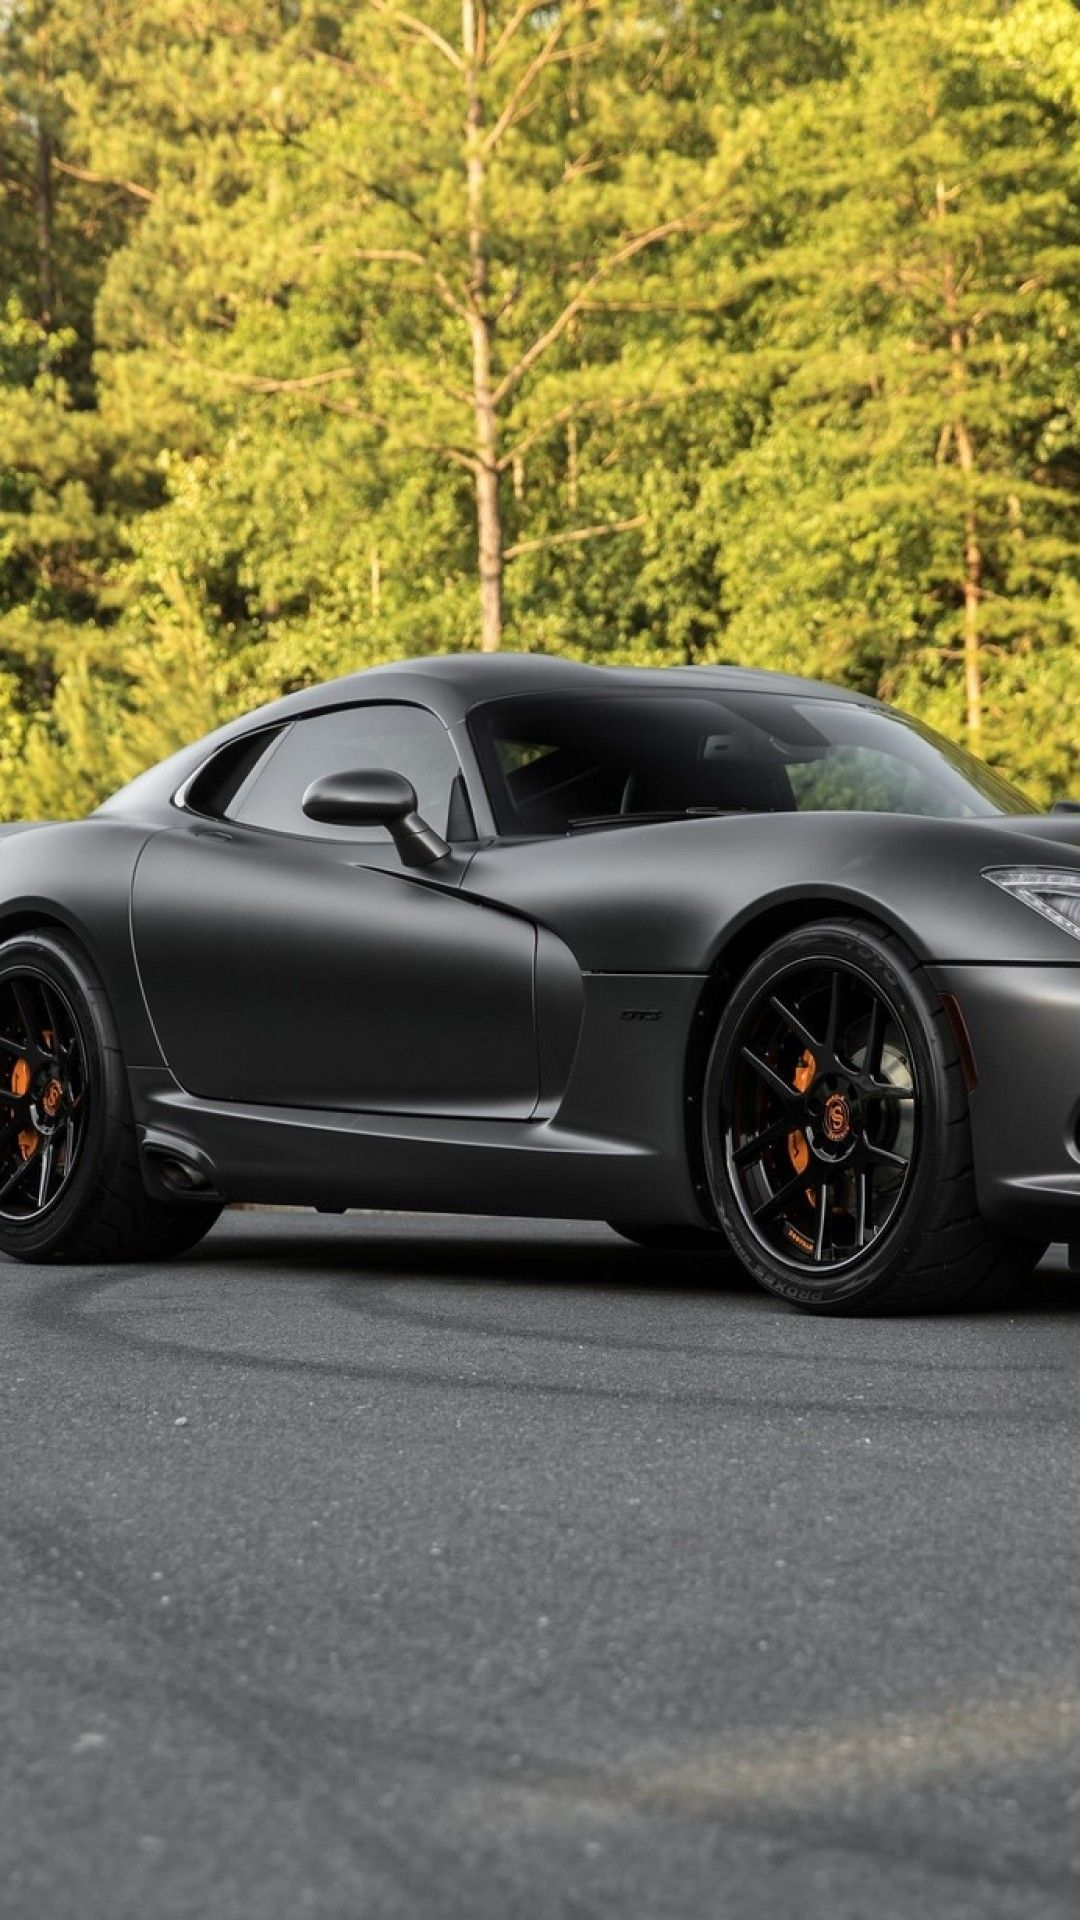 1080x1920 Download 1080x1920 Dodge Viper Gts, Silver, Side View, Sport, Cars ...